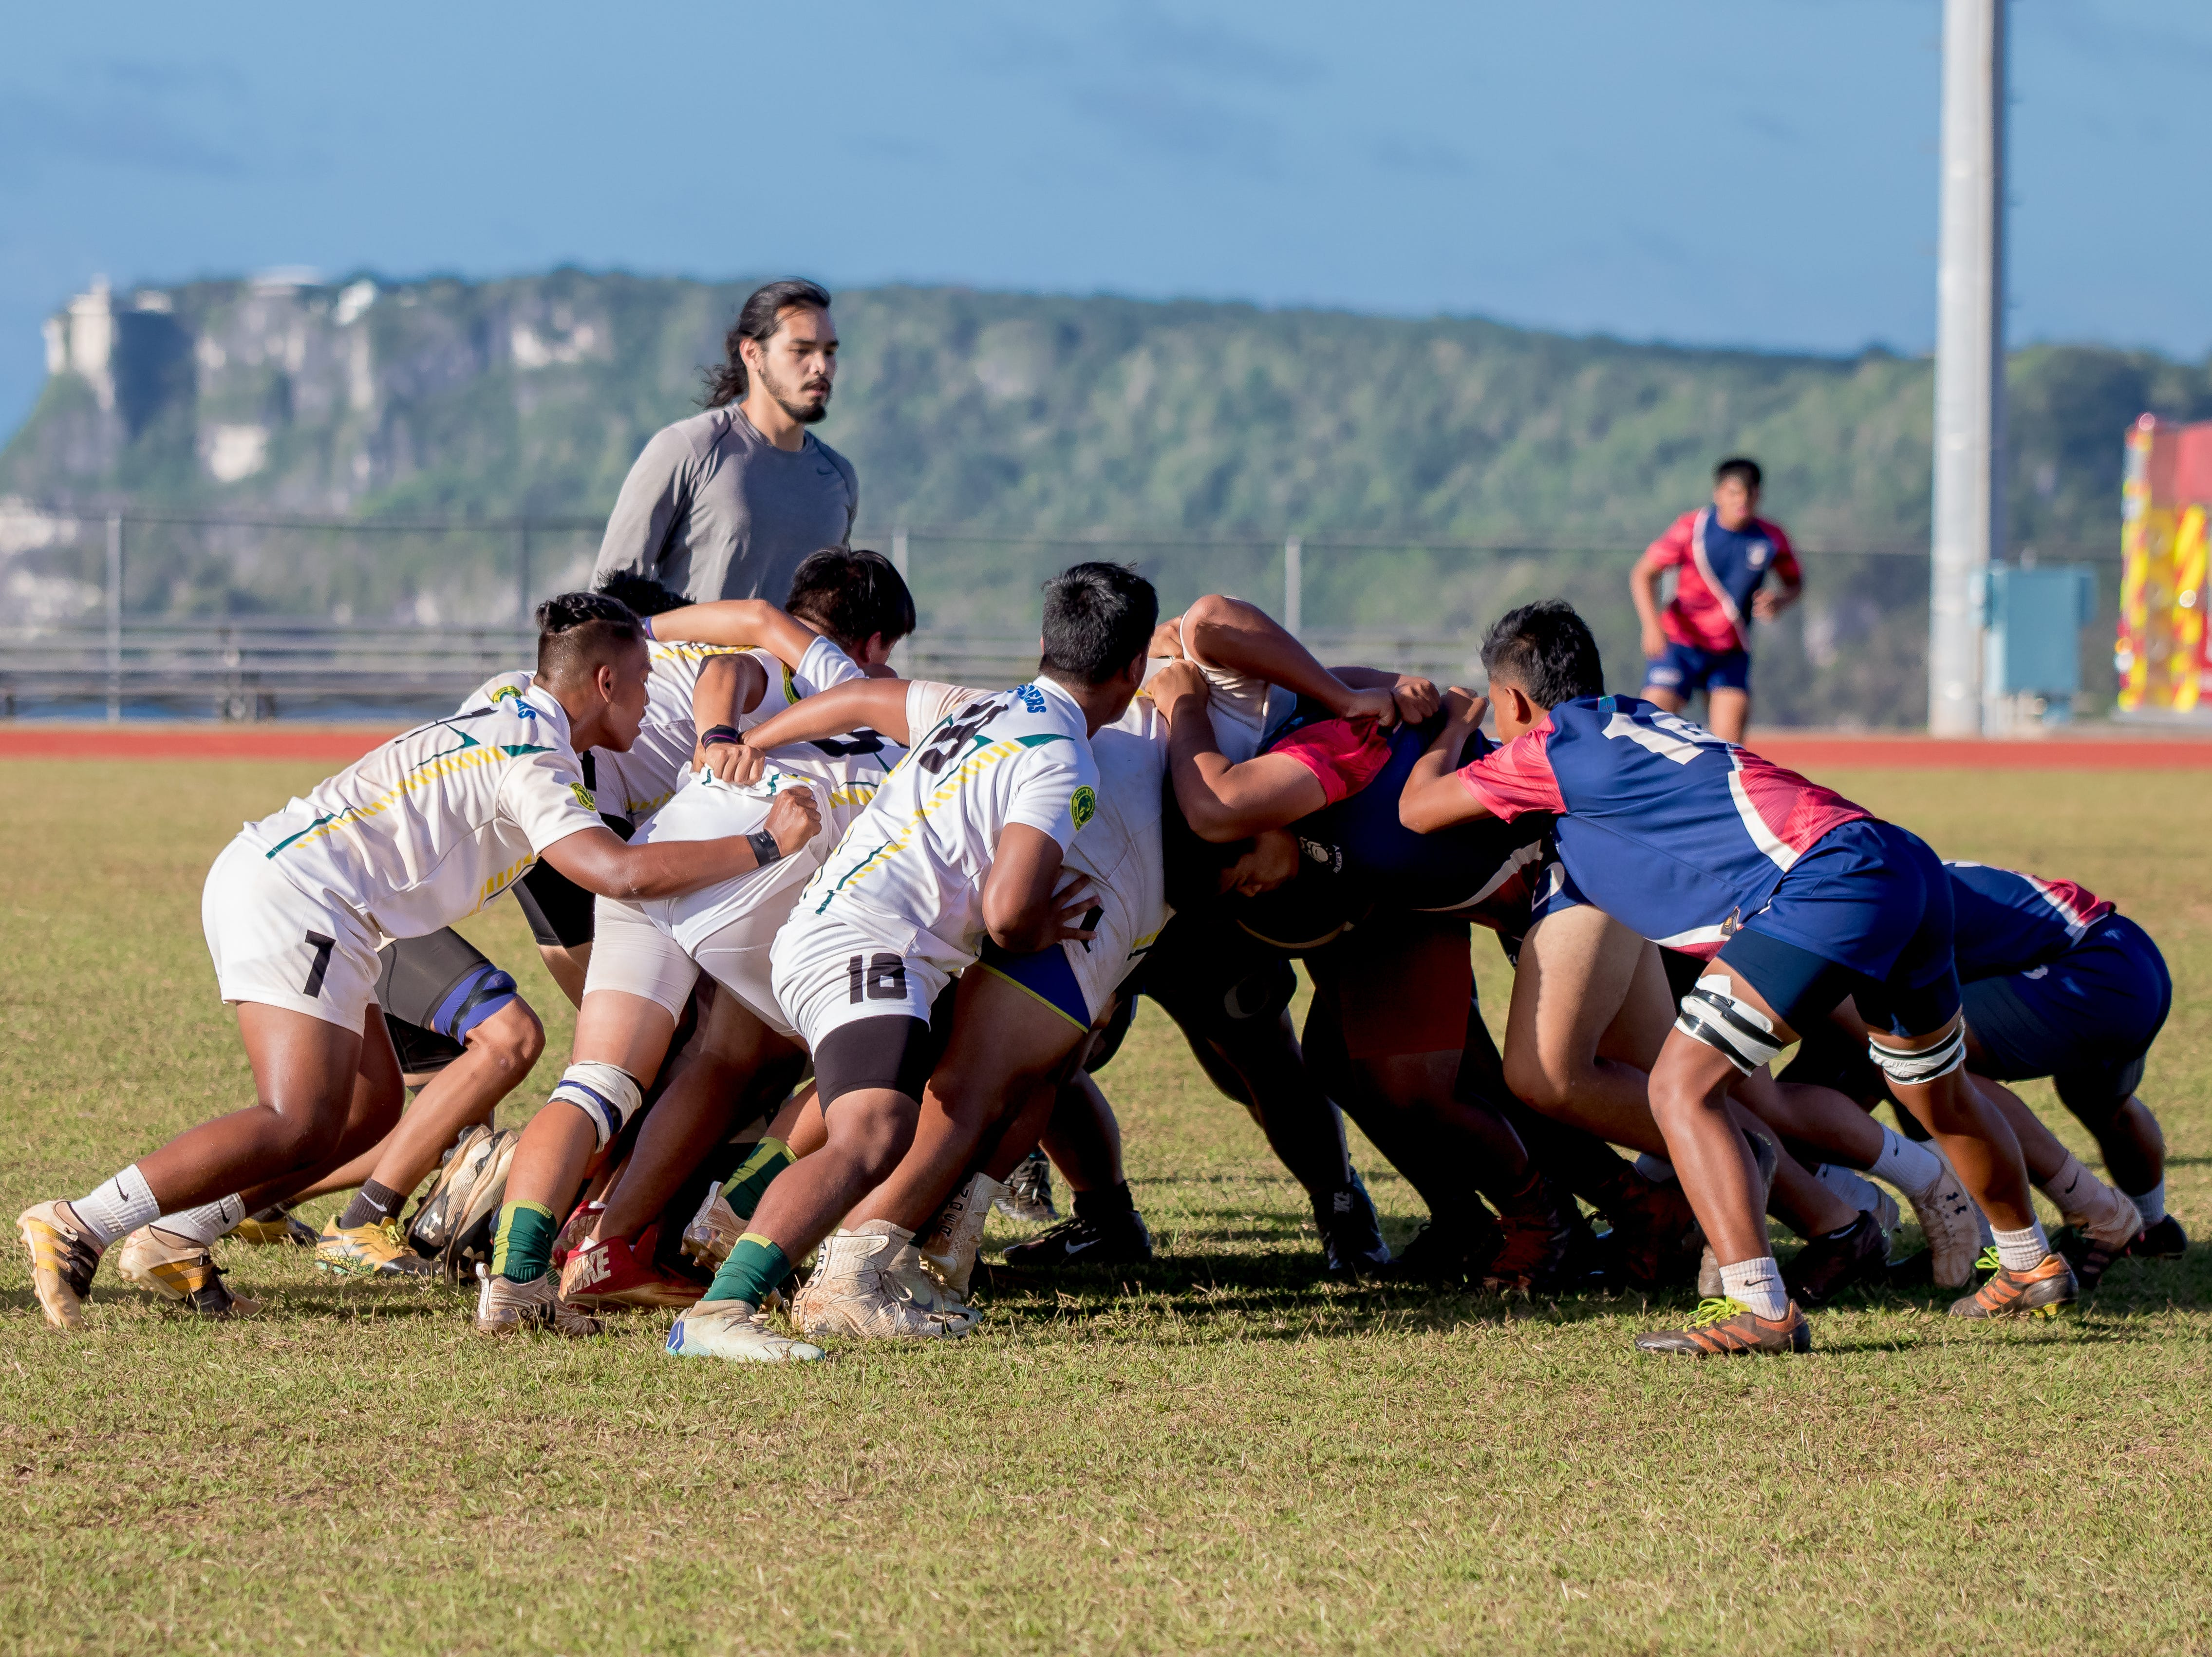 Players in action during a scrum at an IIAAG/GRFU Boys Rugby match at Ramsey Field on March 6.